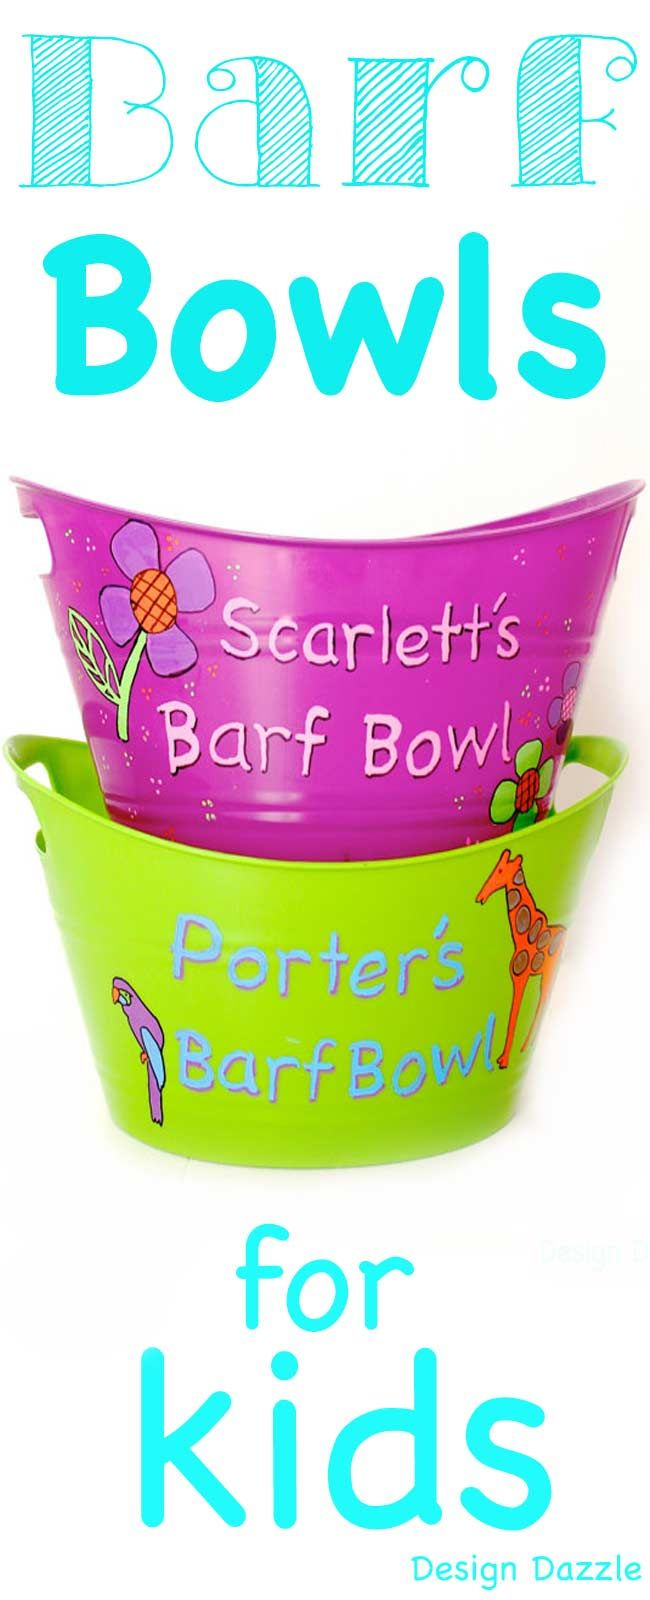 Barf Bowls for Kids! Your kids can paint and personalize dollar store bowls. These are perfect when your littles get sick. Store under the bathroom sink so they're handy when you need it! Design Dazzle